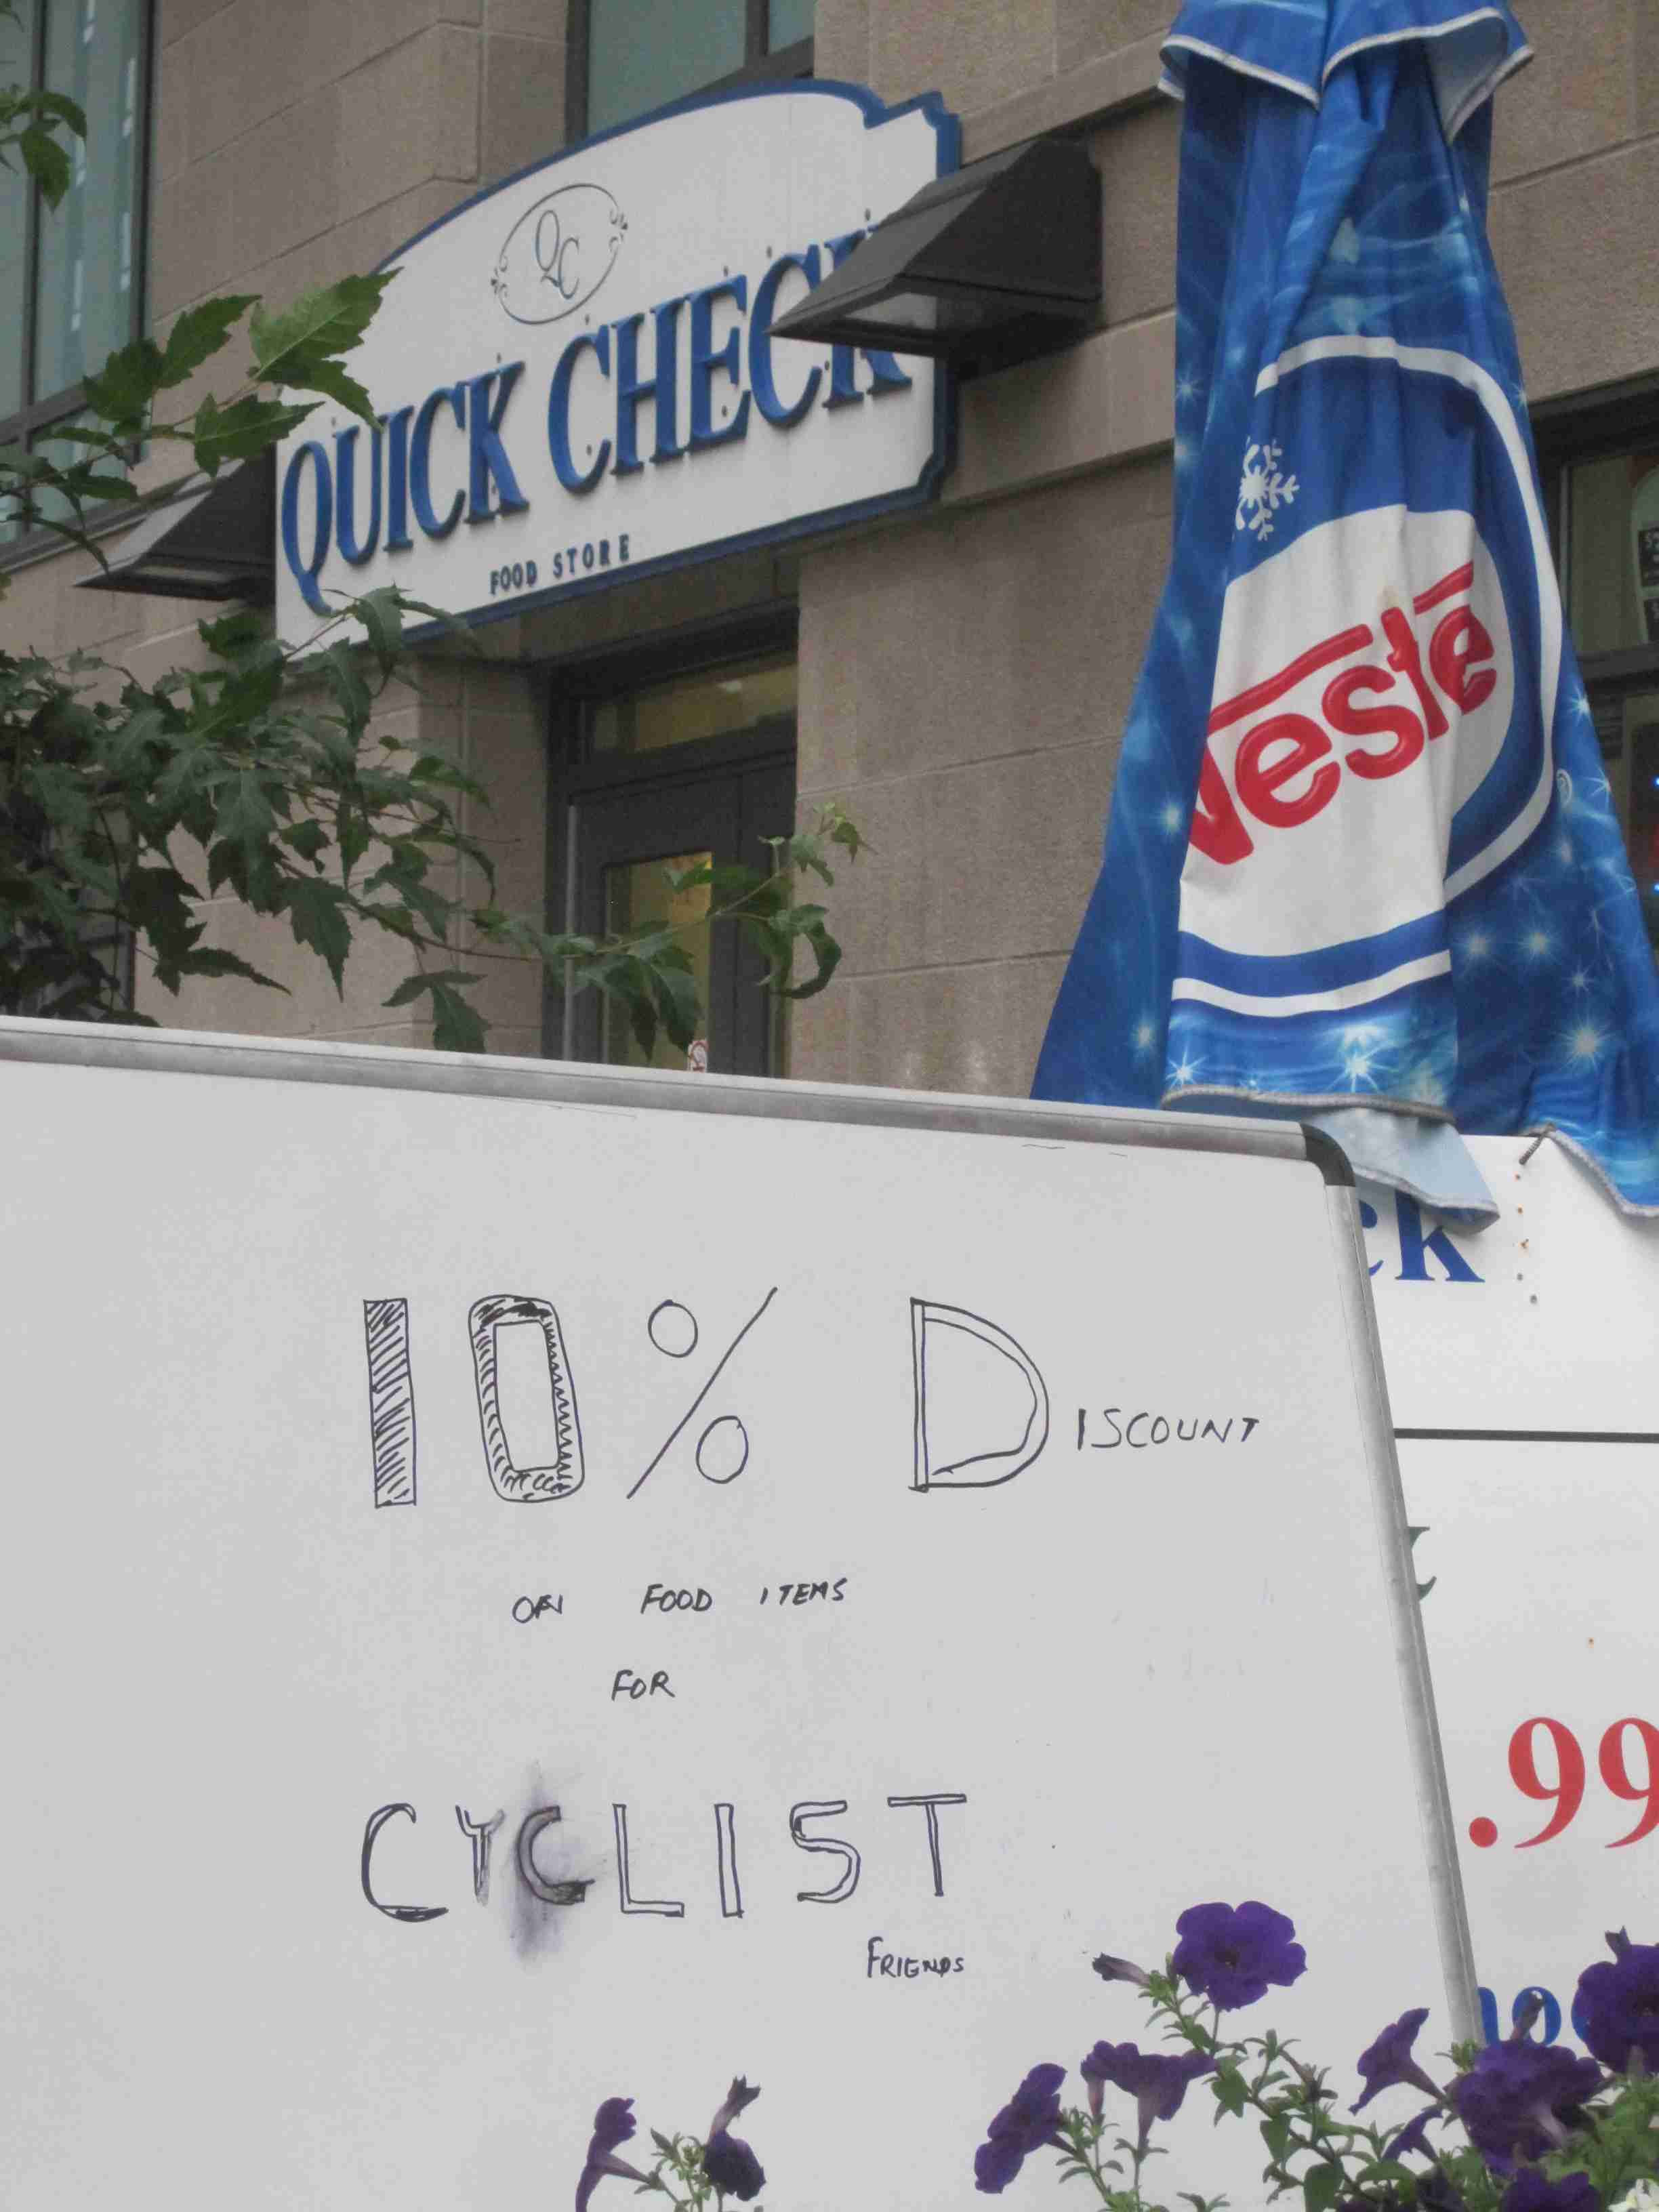 Ottawa Bicycle Culture – Quick Check at Laurier and Lyon